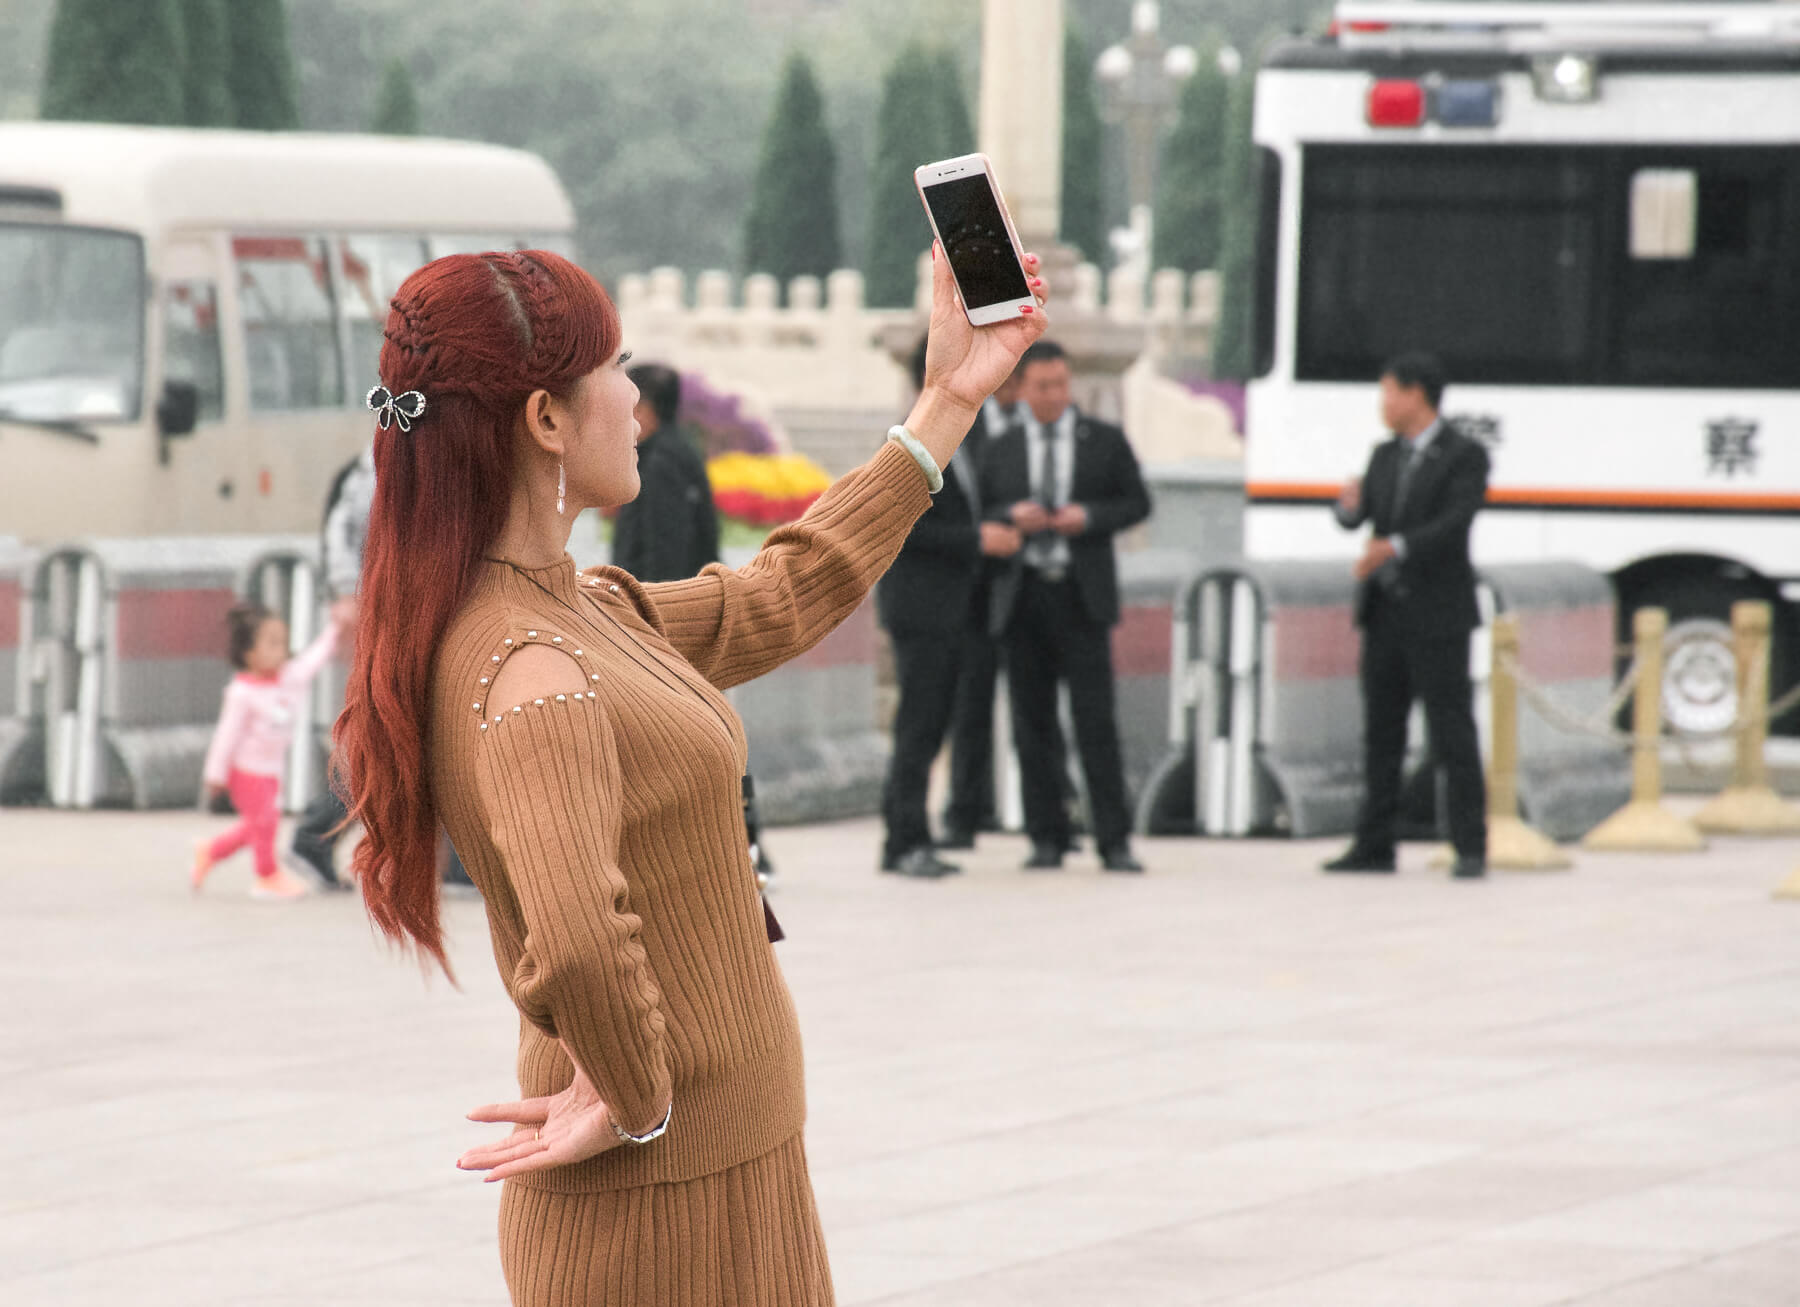 A Chinese lady with long red hair, holding her phone up high taking a selfie